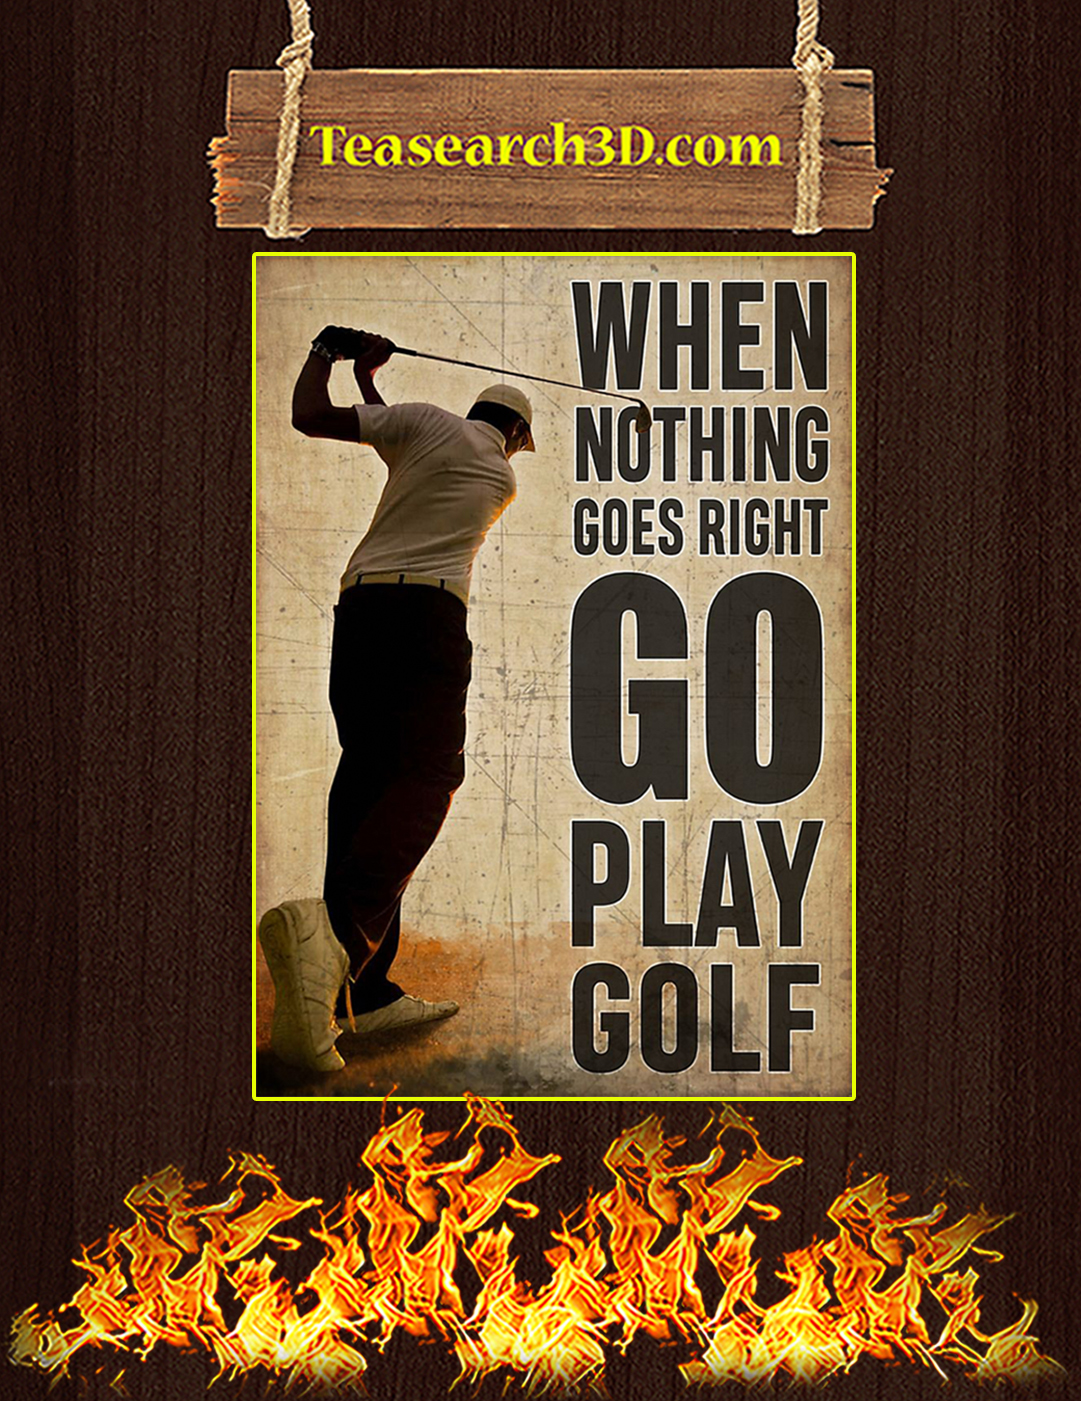 When nothing goes right go play golf poster A2